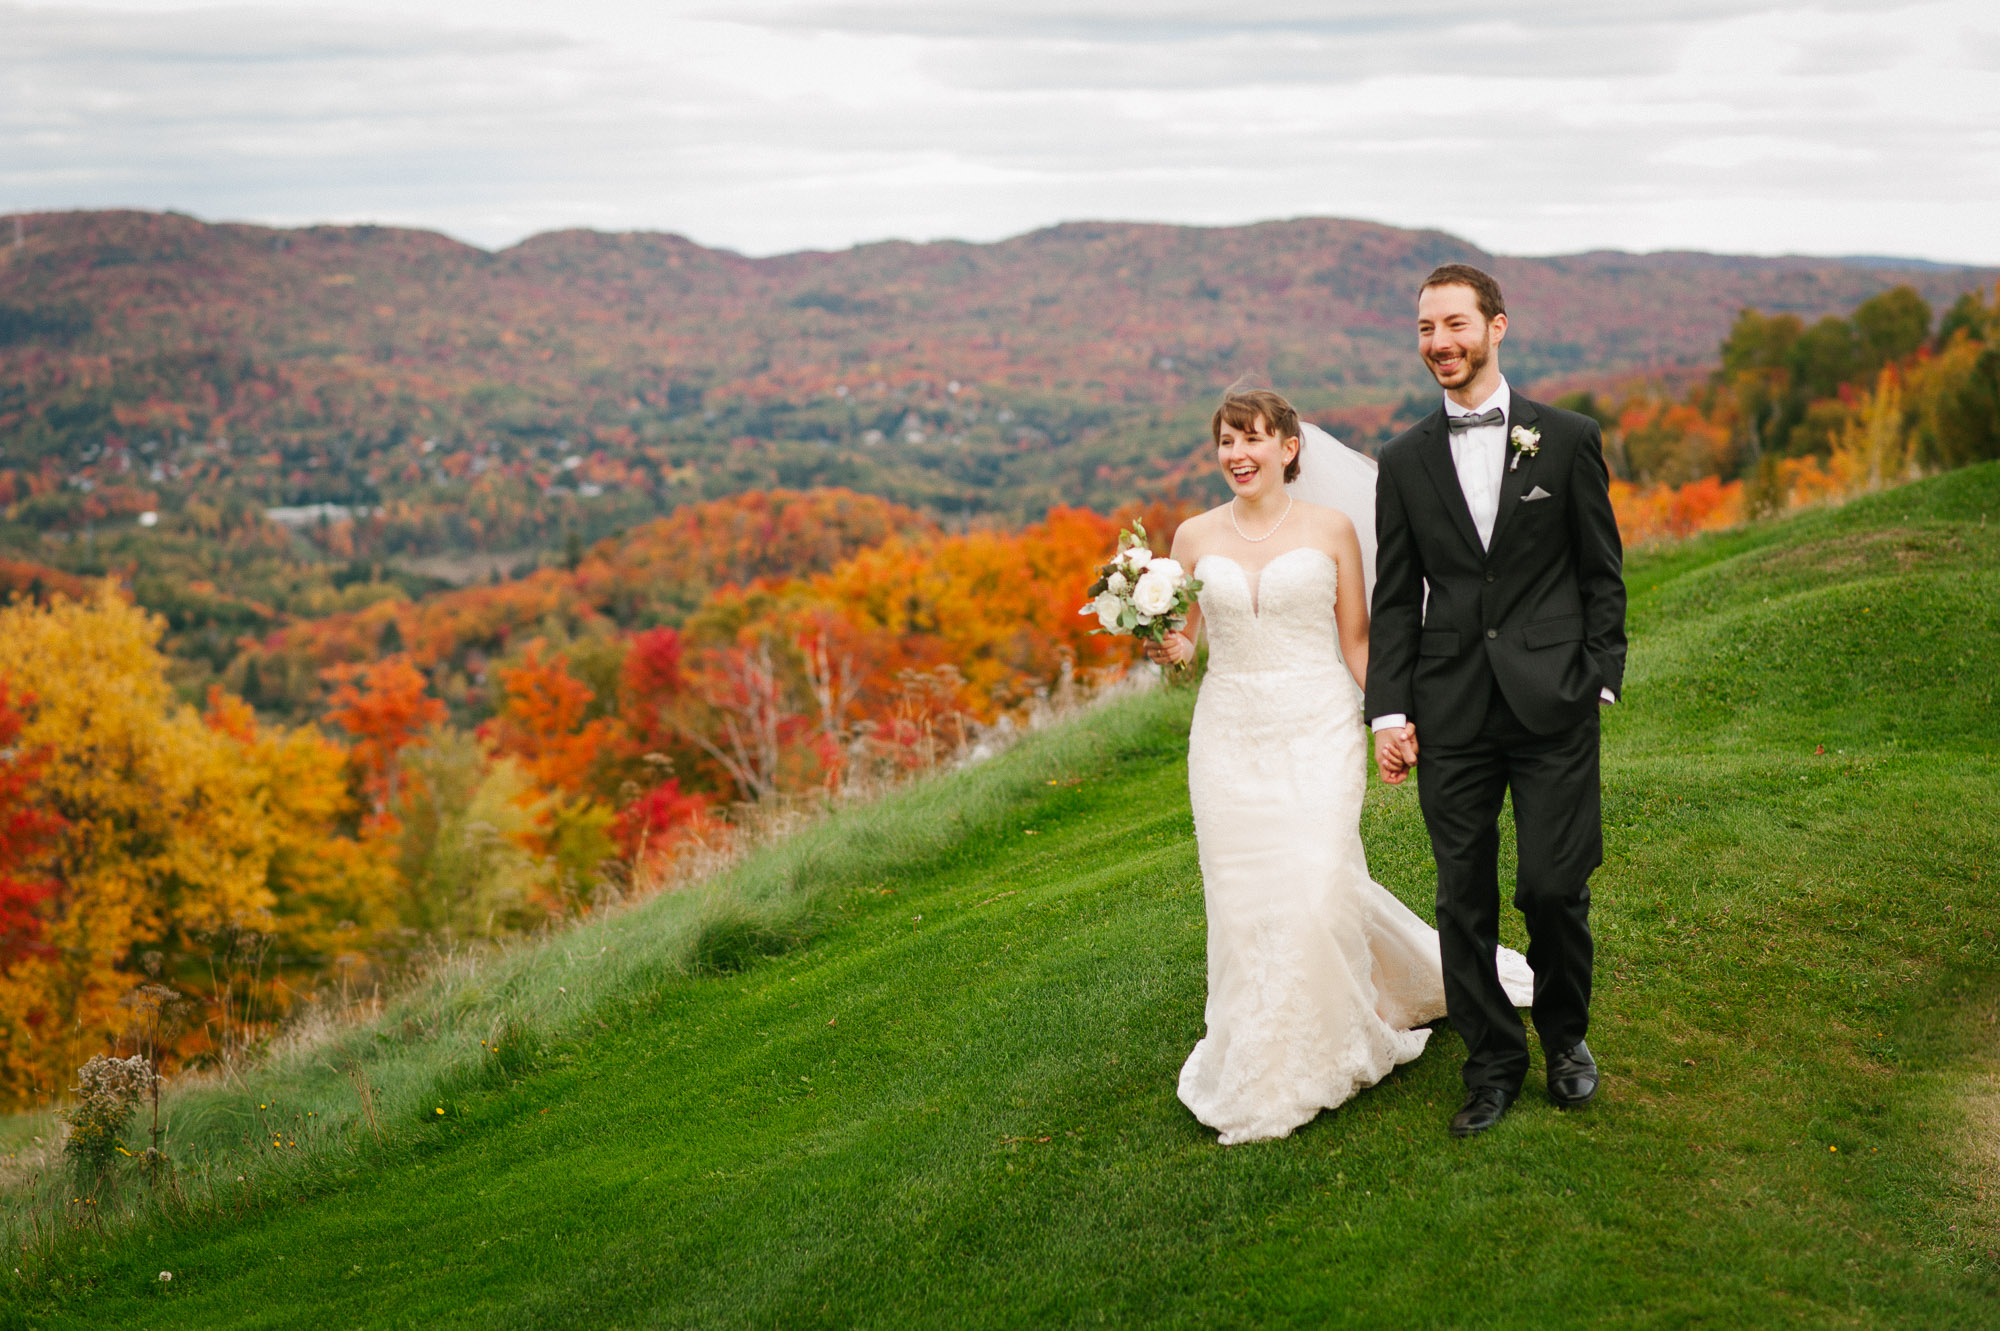 fall-wedding-by-alex-tran-photography-montreal-wedding-photographer